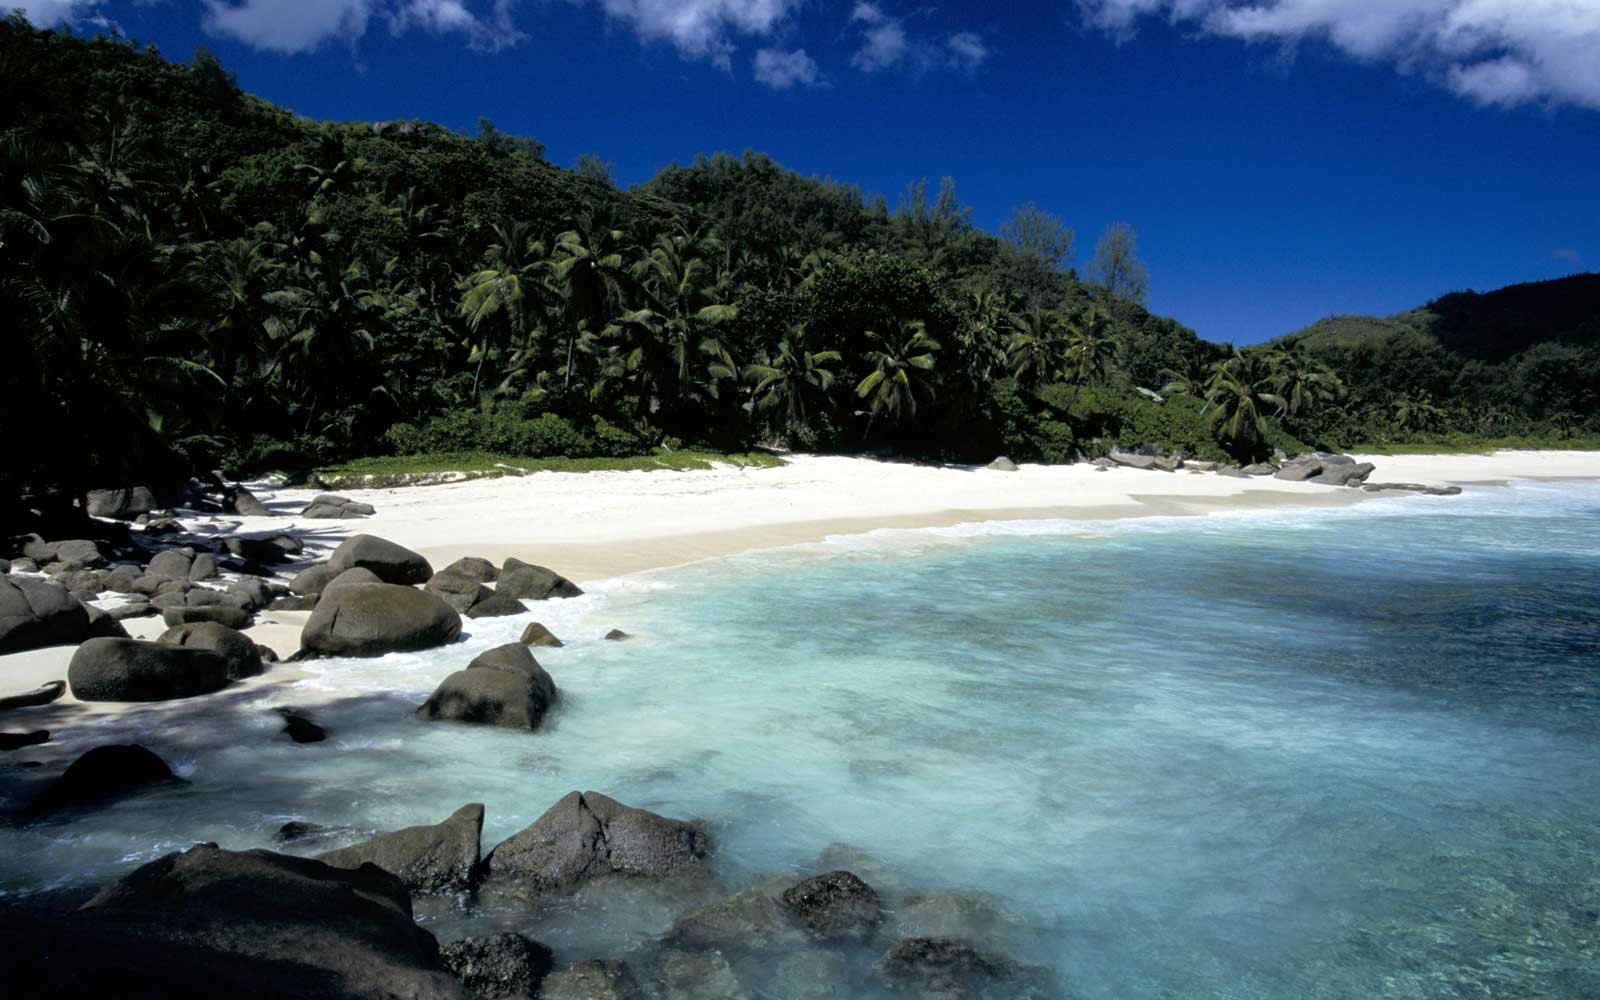 Clear waters of Anse Intendance Beach, in the Seychelles